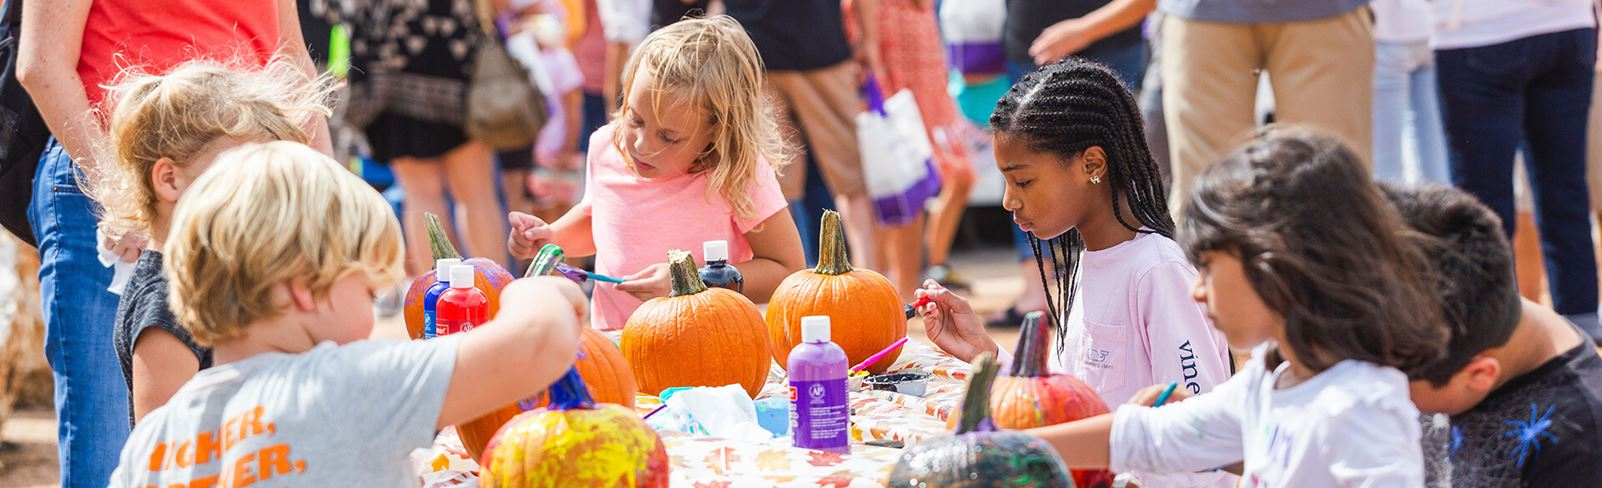 Rancho Sienna Harvest Festival - Children painting pumpkins